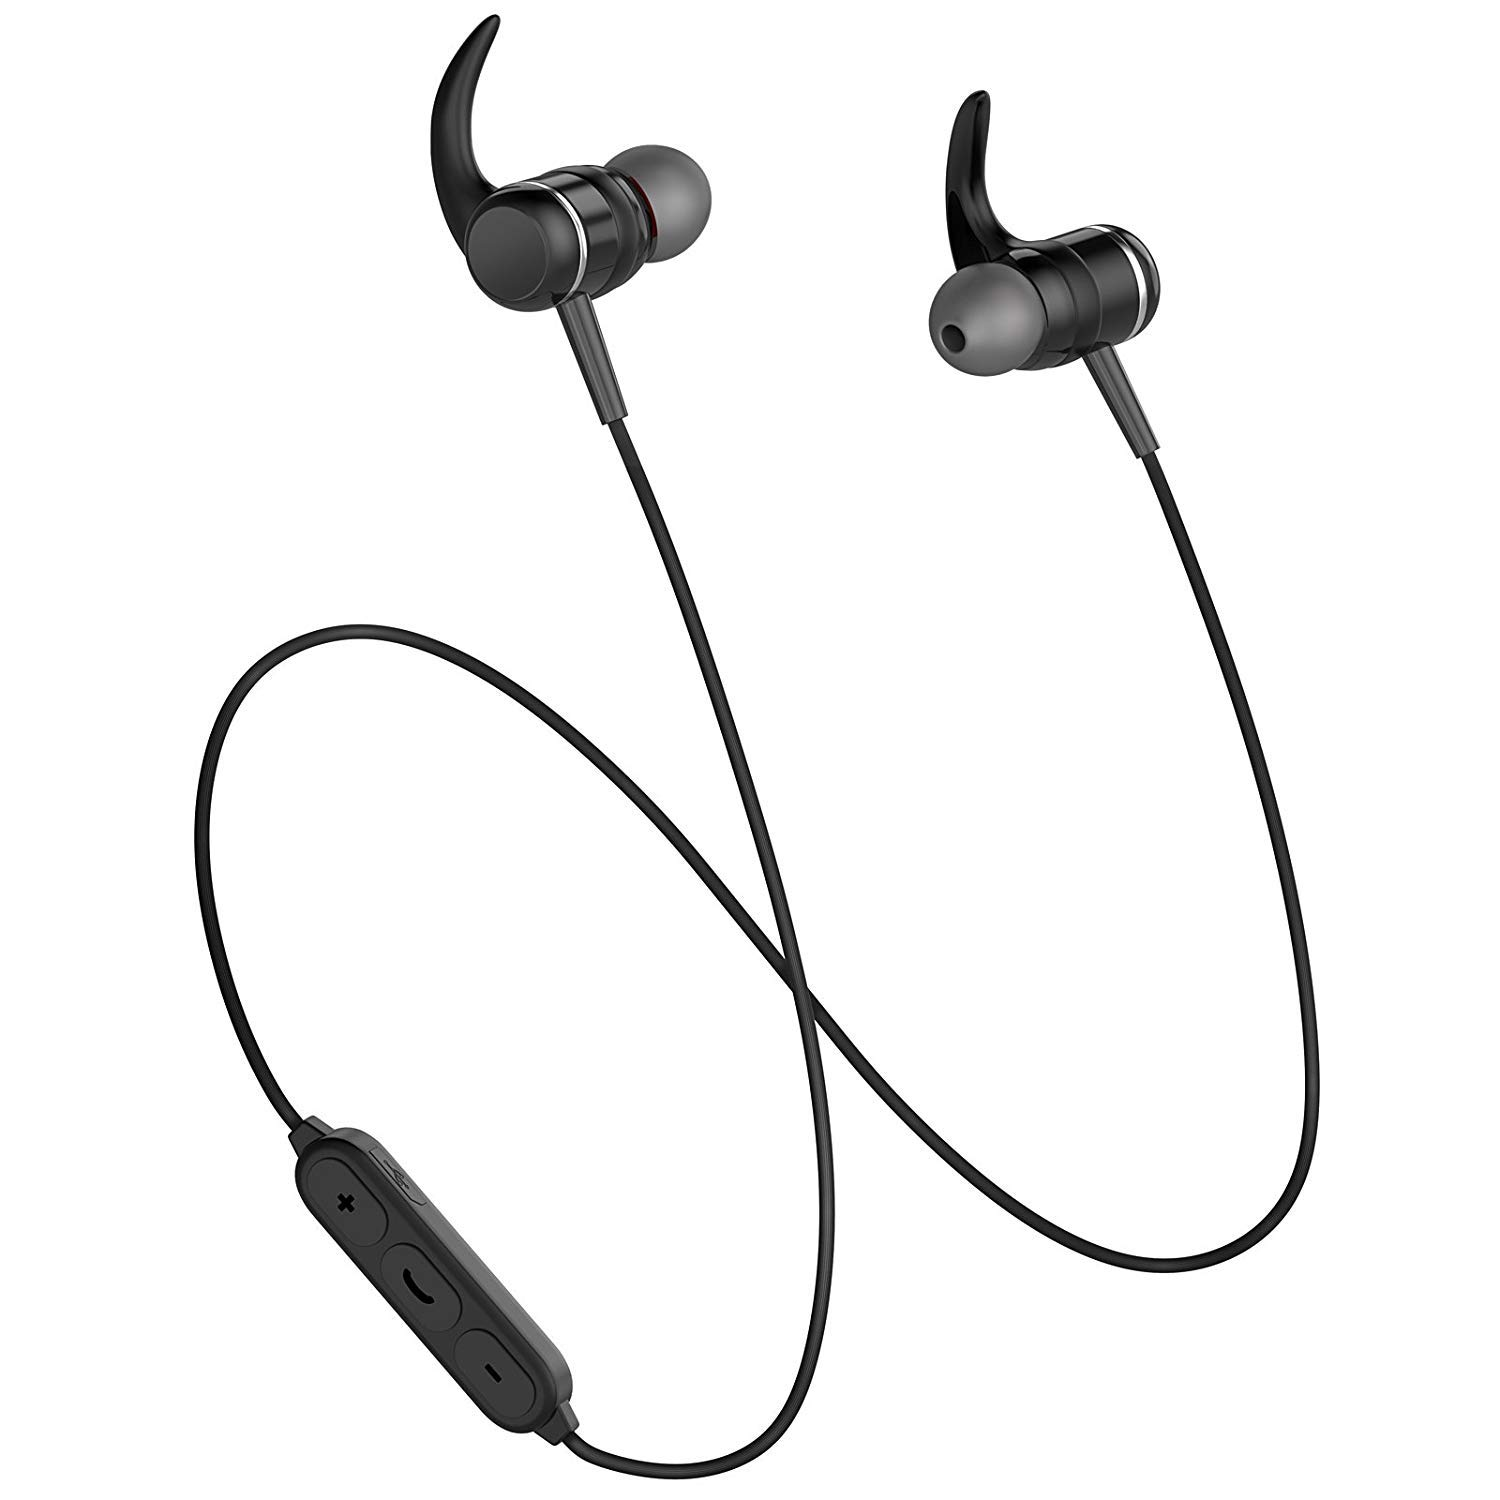 Fiveblessing Bluetooth Headphones 4.1 in-Ear Earphones, Magnetic Wireless Earbuds for Running, High-Fidelity Stereo Earphones with Microphones[Black]